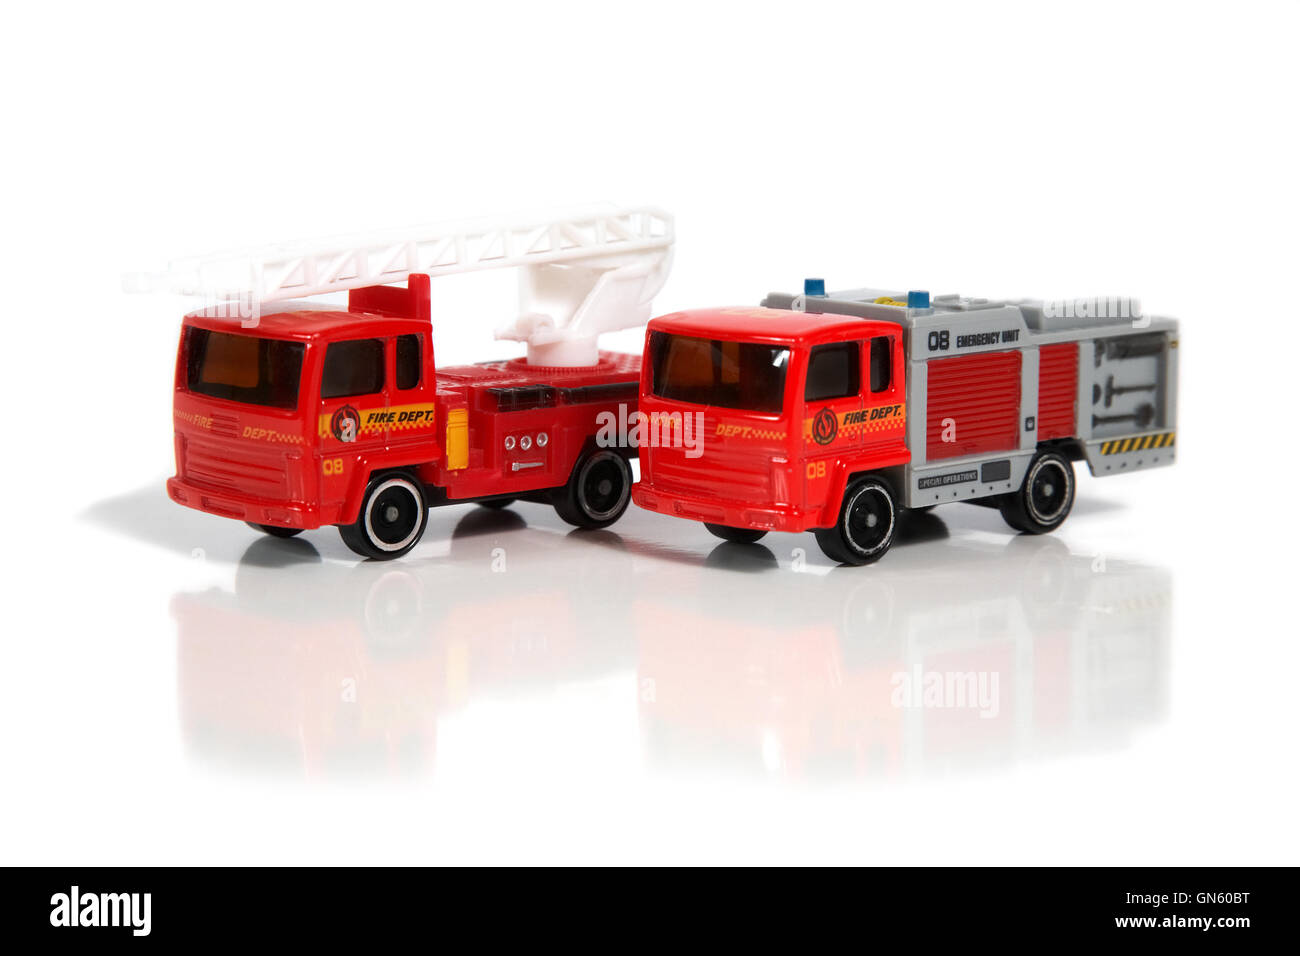 model vehicles of firefighters - Stock Image